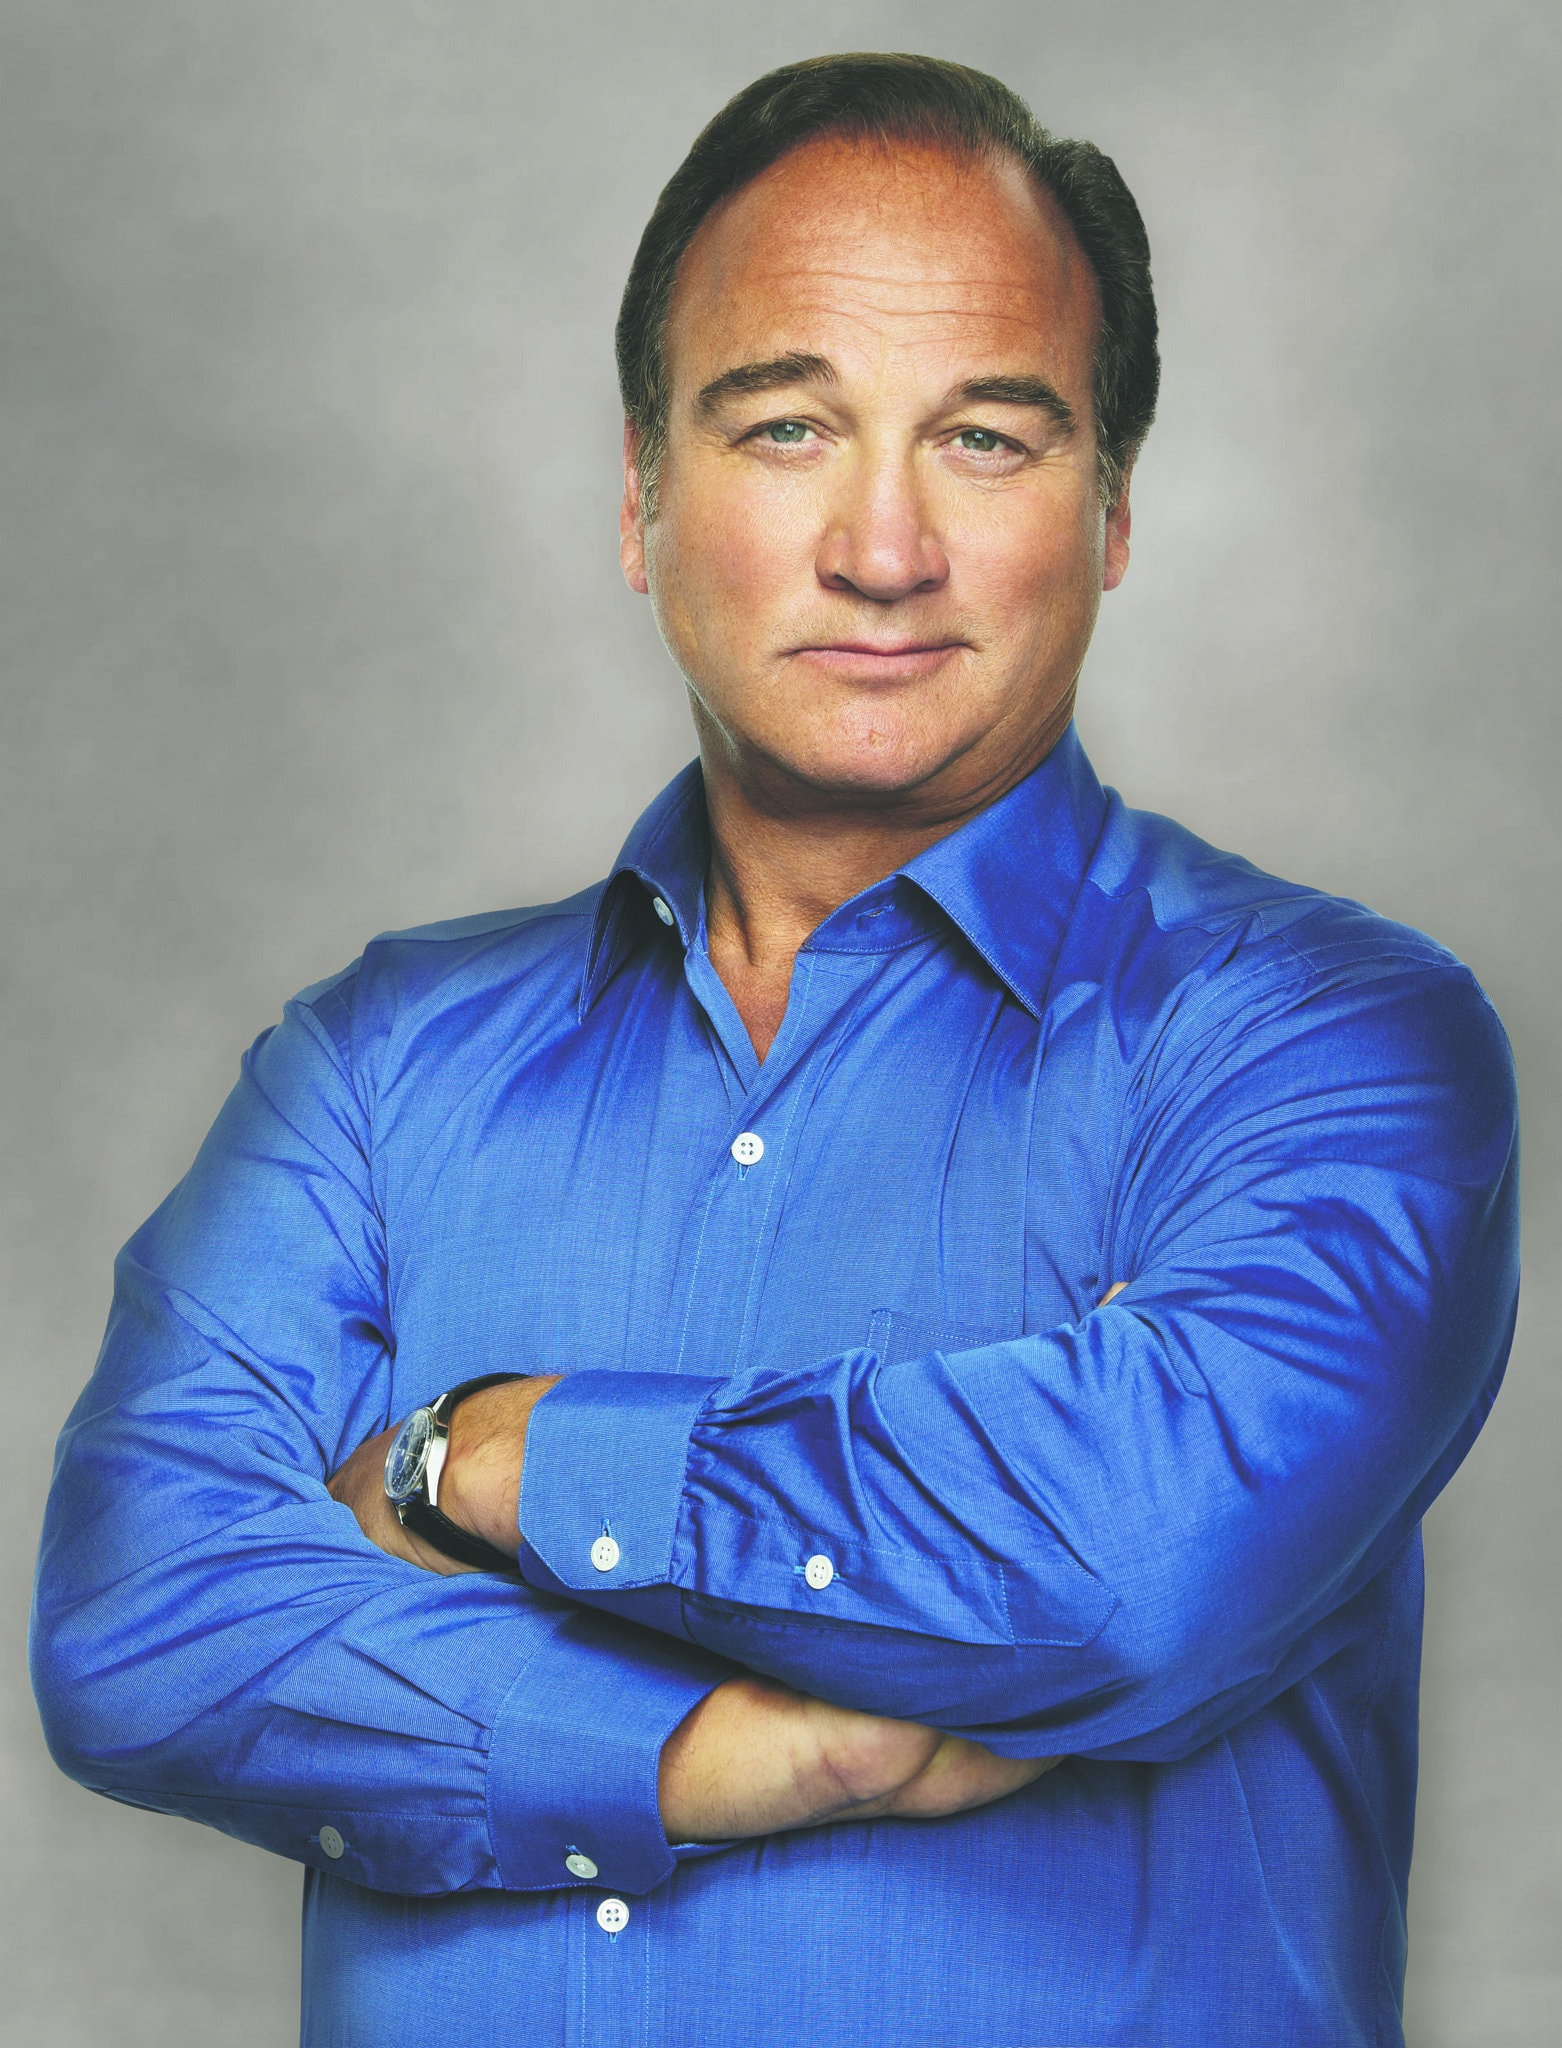 James Belushi Wallpapers hd